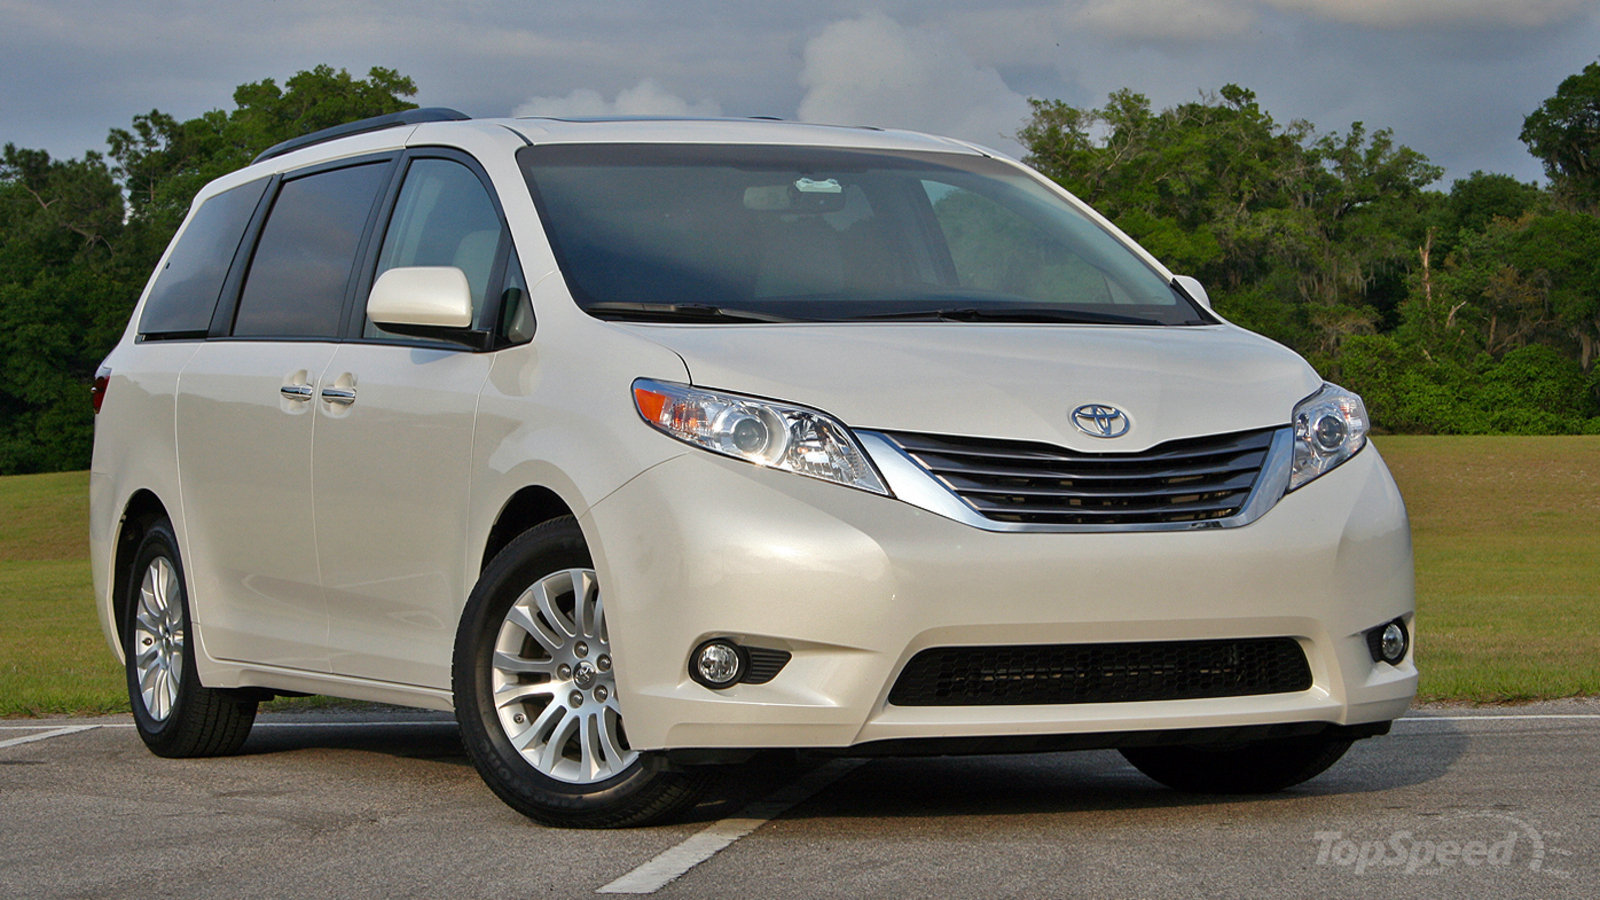 2016 honda odyssey vs 2016 nissan quest compare cars autos post. Black Bedroom Furniture Sets. Home Design Ideas